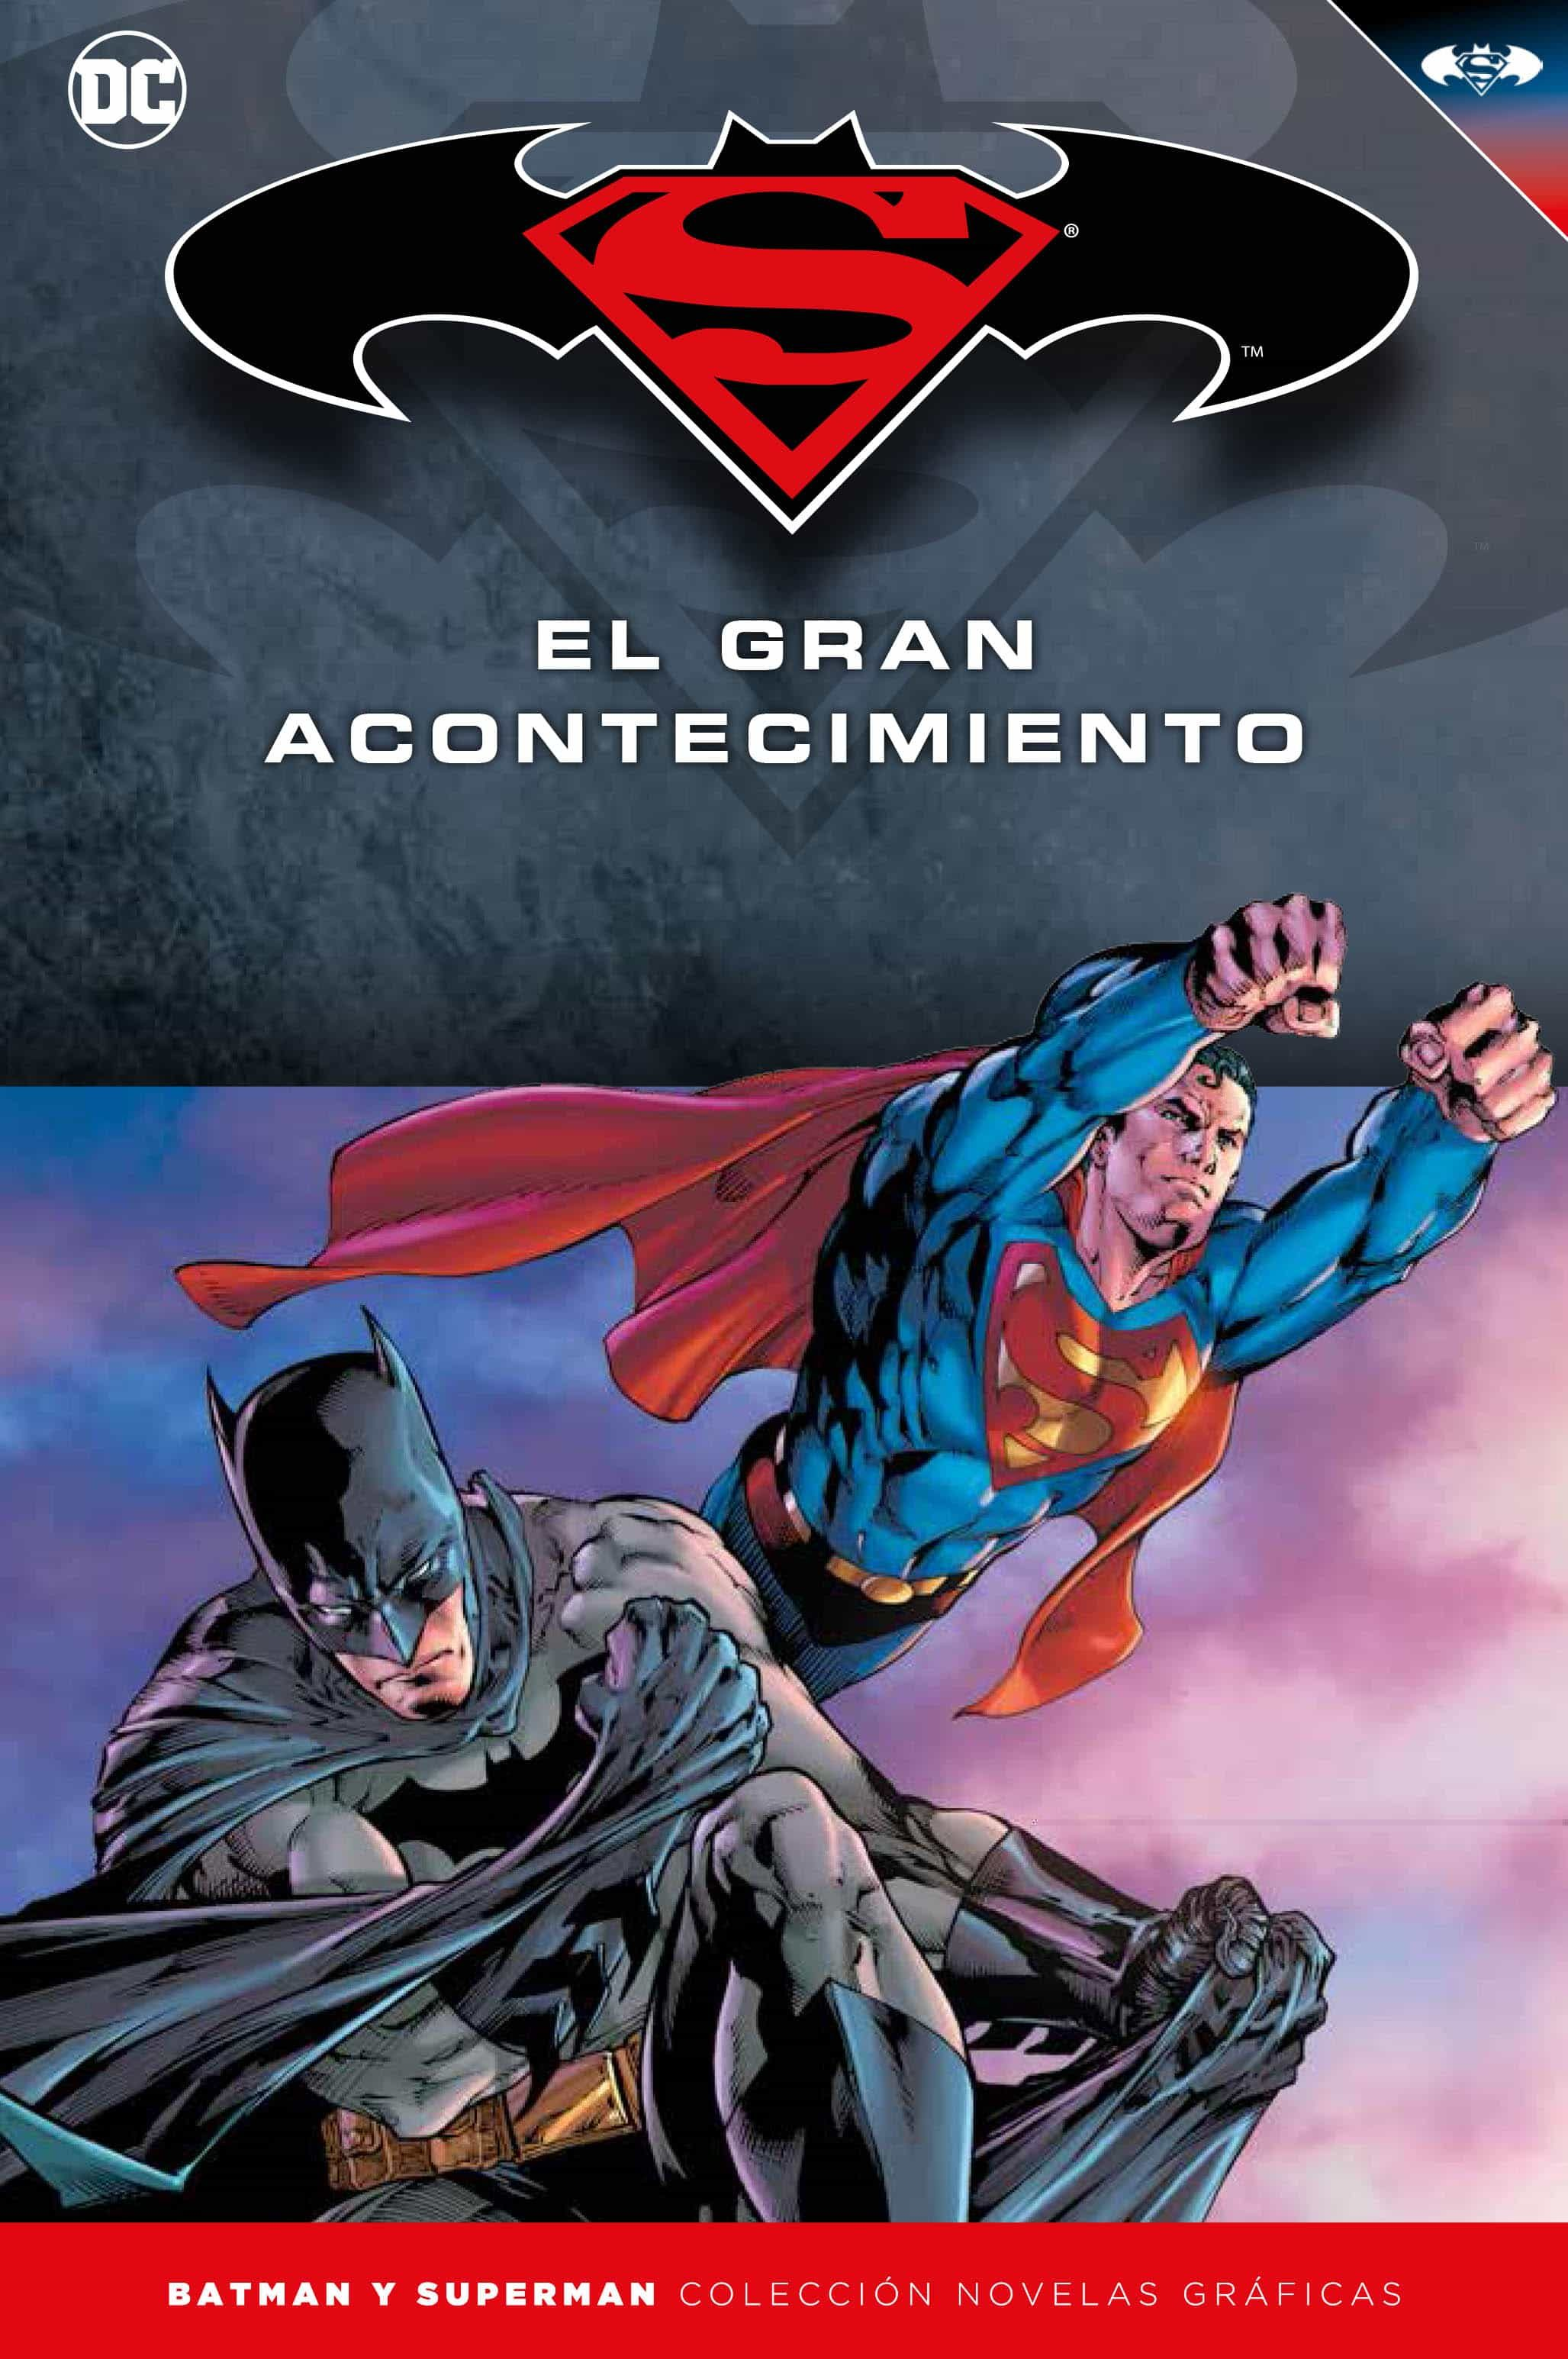 BATMAN Y SUPERMAN - COLECCION NOVELAS GRAFICAS NUMERO 18: BATMAN/ SUPERMAN:EL GRAN ACONTECIMIENTO